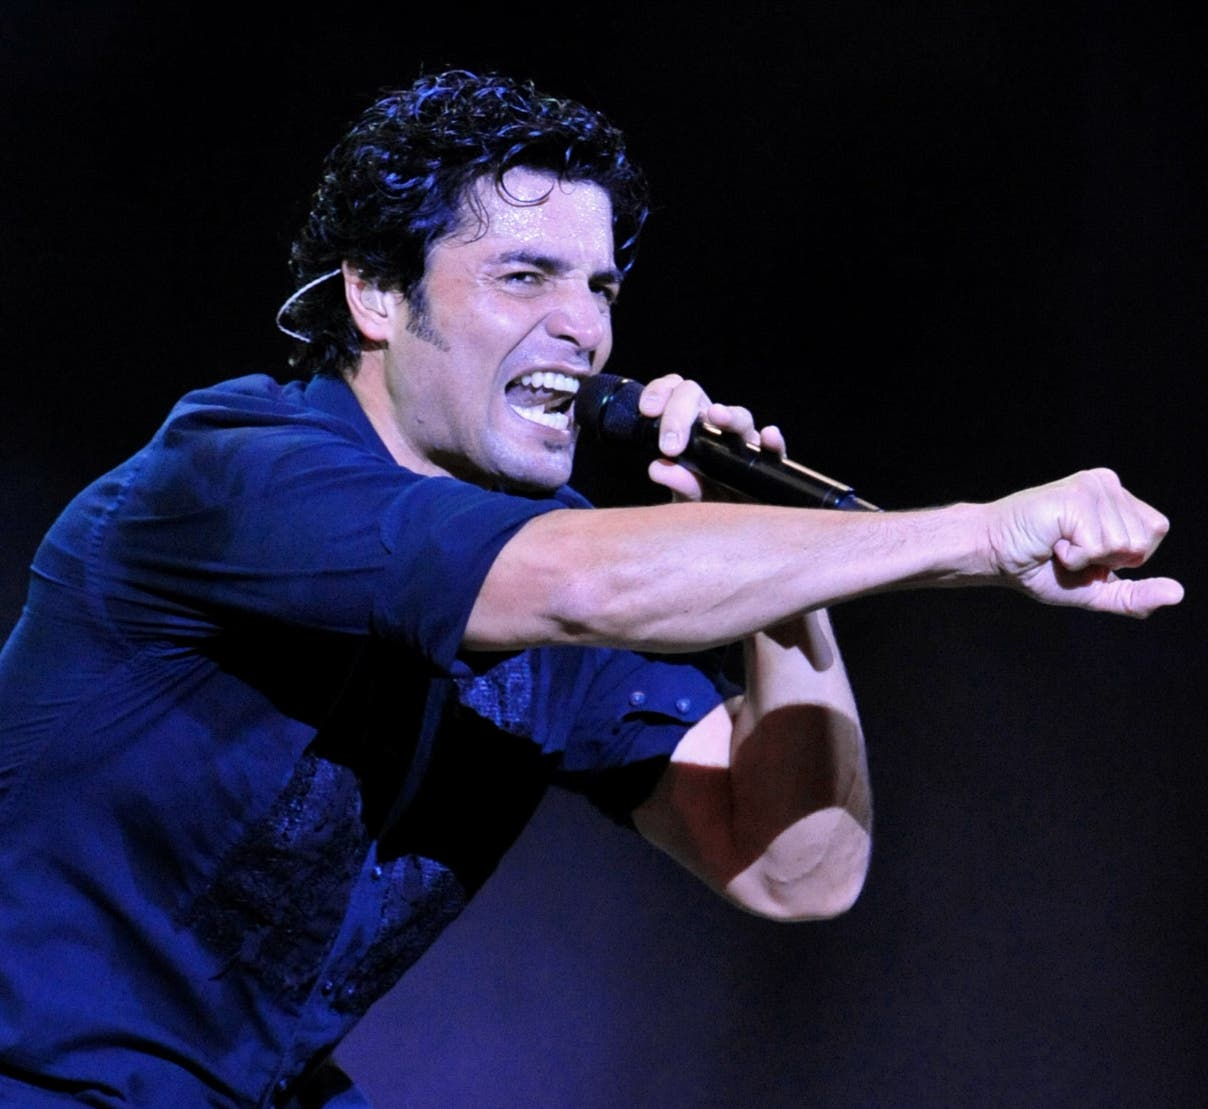 CHILE-FESTIVAL-SONG-PUERTO RICO-CHAYANNE